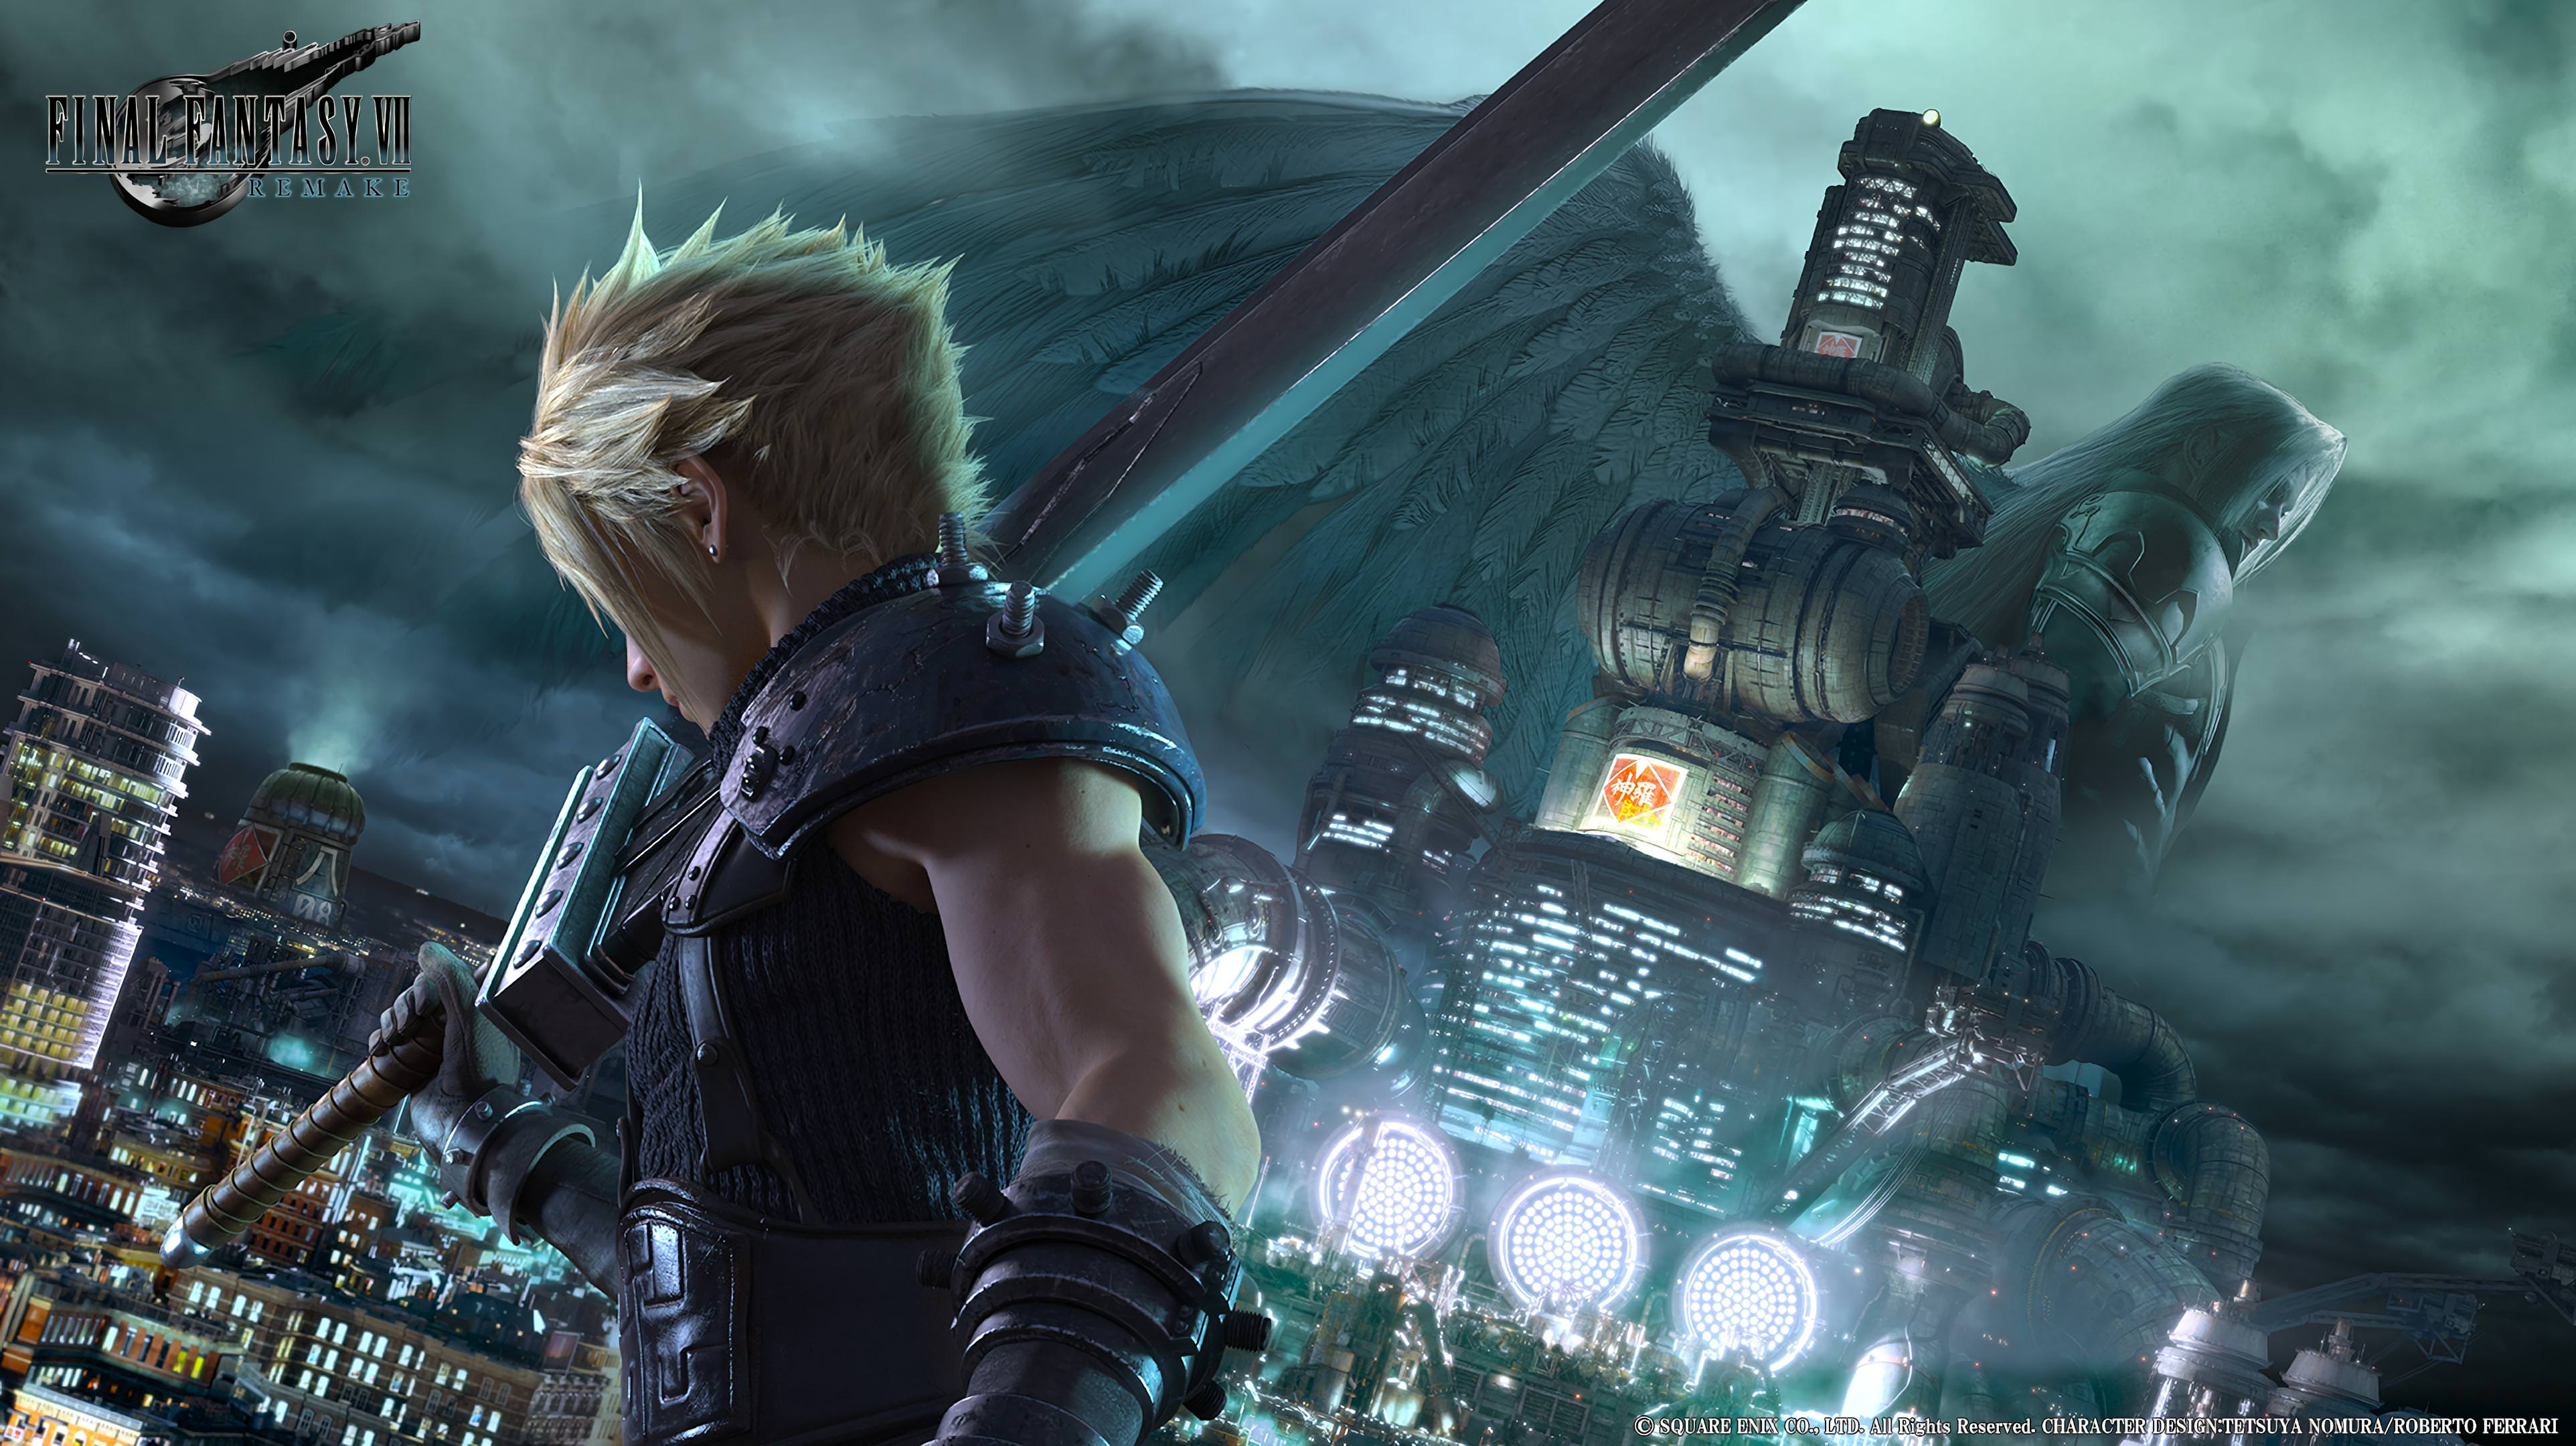 Final Fantasy Vii Hd Wallpapers 36 Images Dodowallpaper